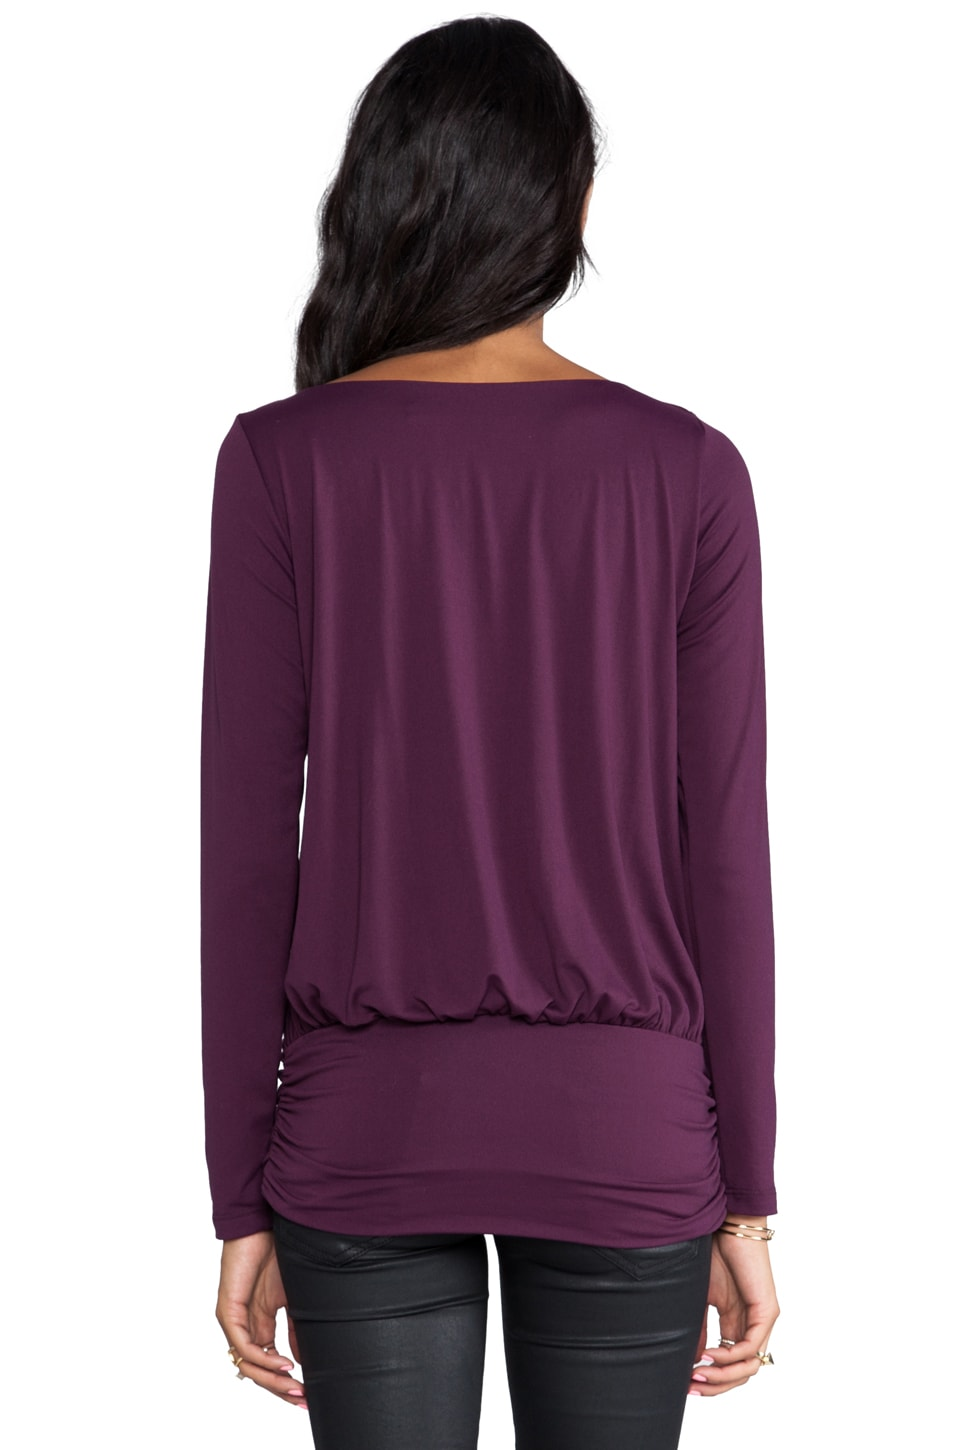 "Susana Monaco Light Supplex Long Sleeve 10"" Top in Ruby"